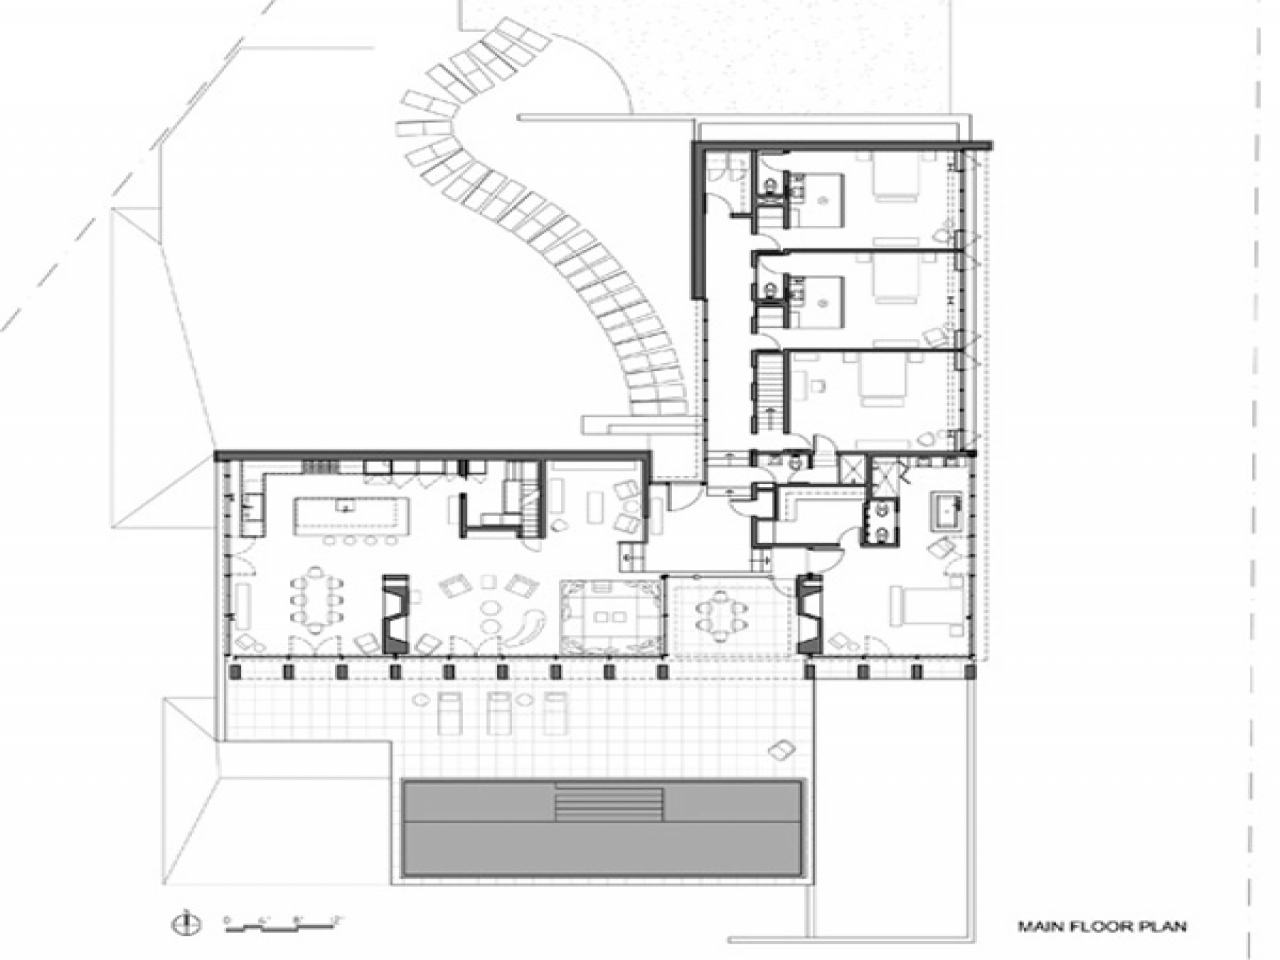 V Shaped Small House Floor Plans on x shaped house plans, c shaped house plans, h-shaped ranch house plans, v-shaped craftsman house plans, v-shaped courtyard house plans,